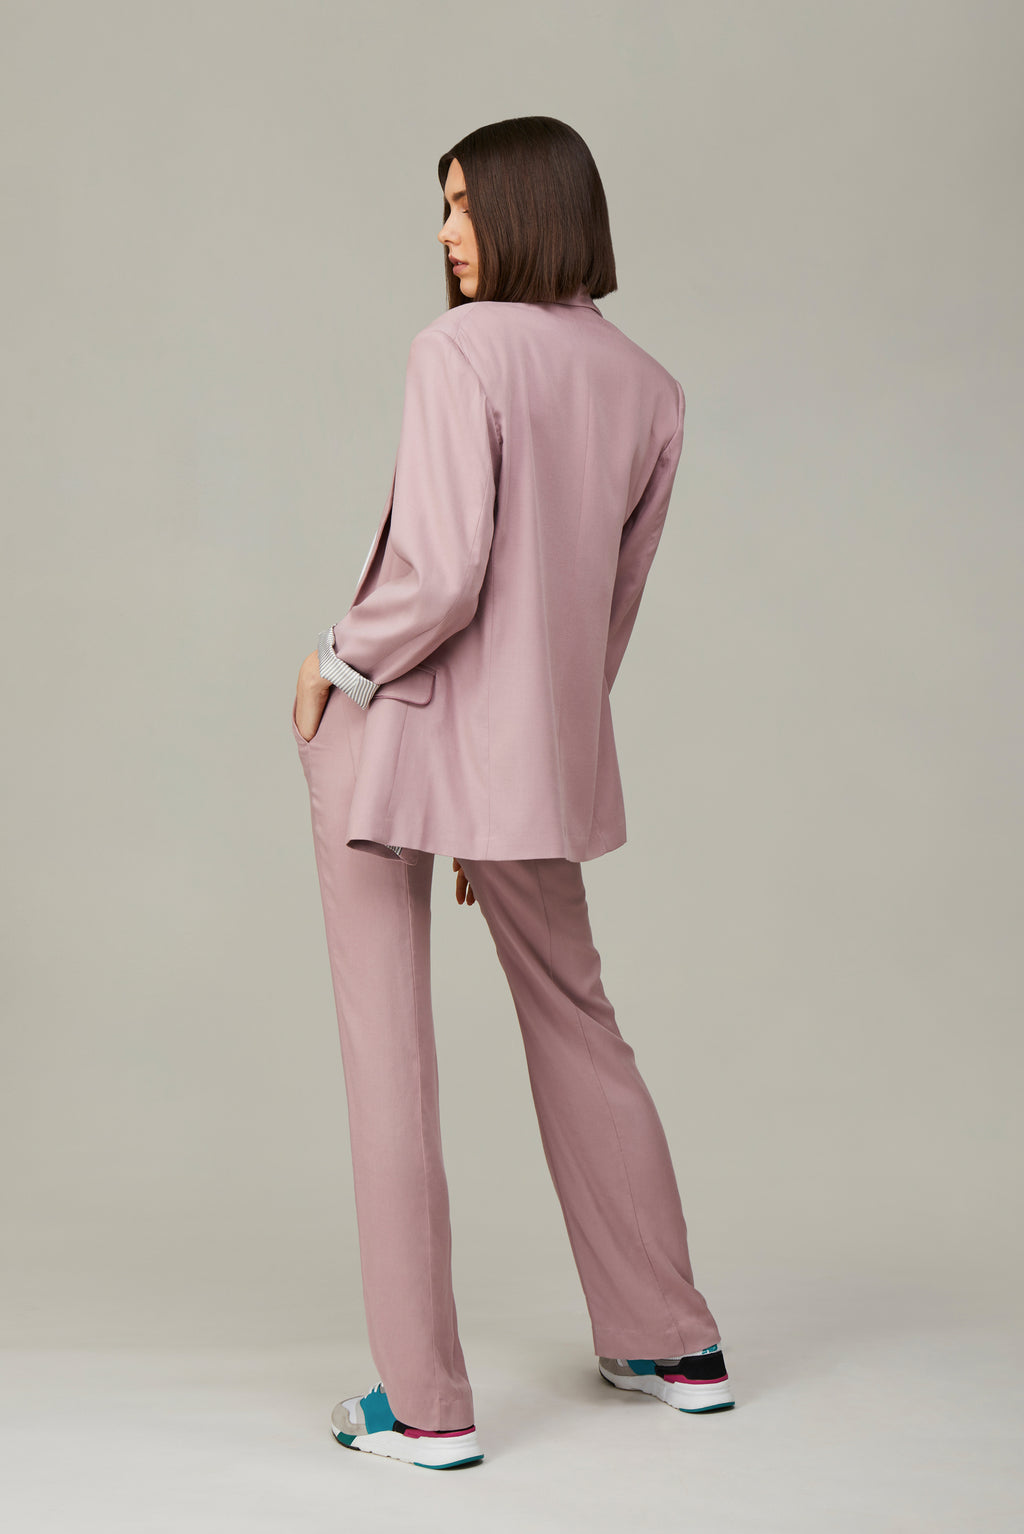 The Antique Pink Lover Blazer